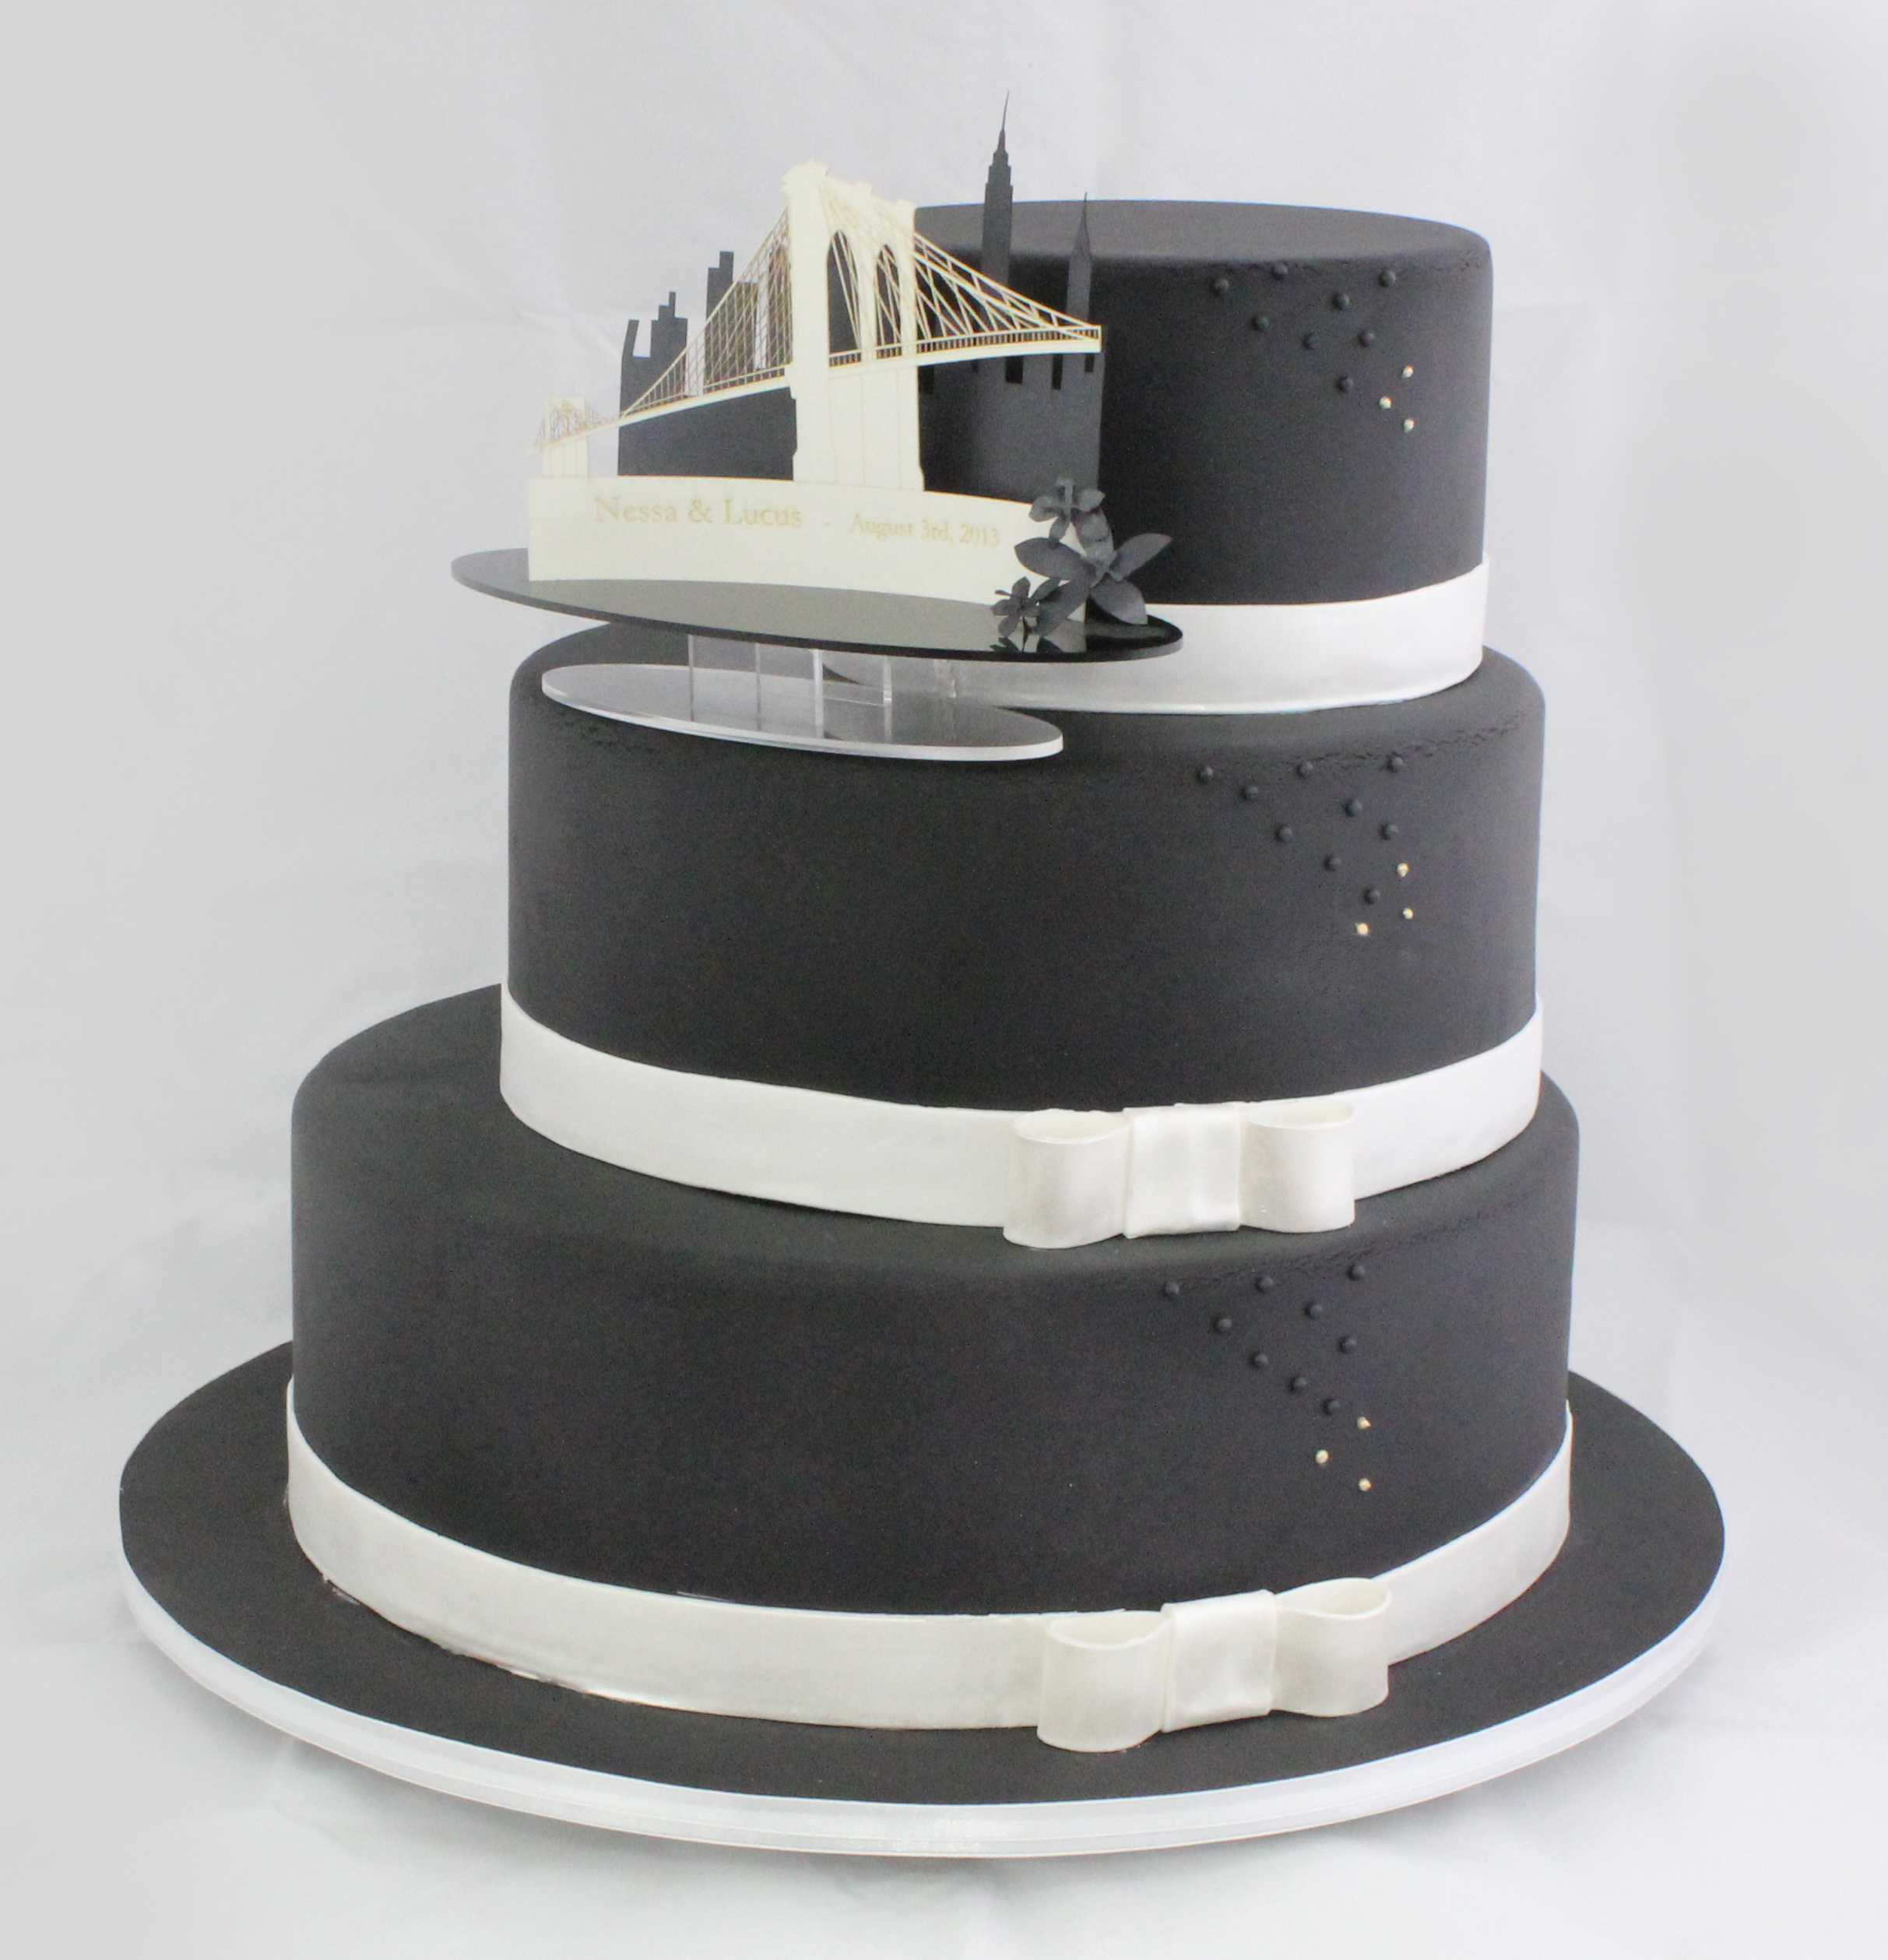 brooklyn wedding cakes wedding cakes betrothed 12185